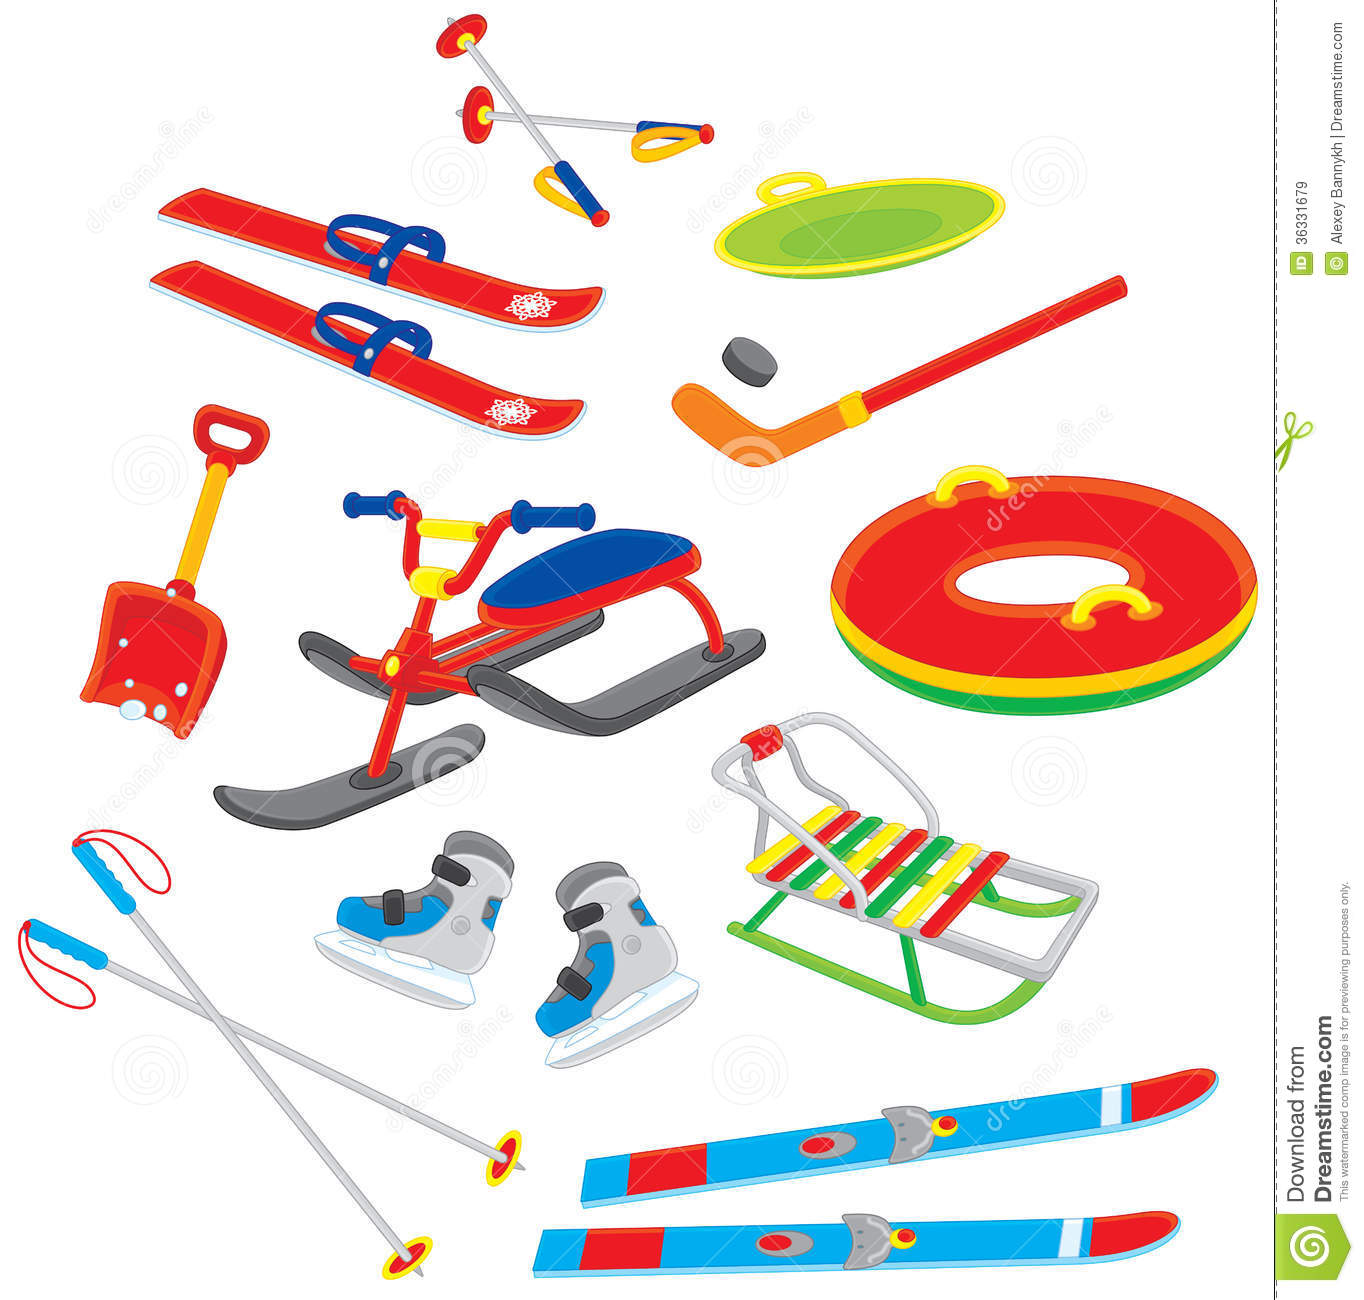 objects for winter leisure royalty free stock images image 36331679 dog sled clip art dog sled clip art